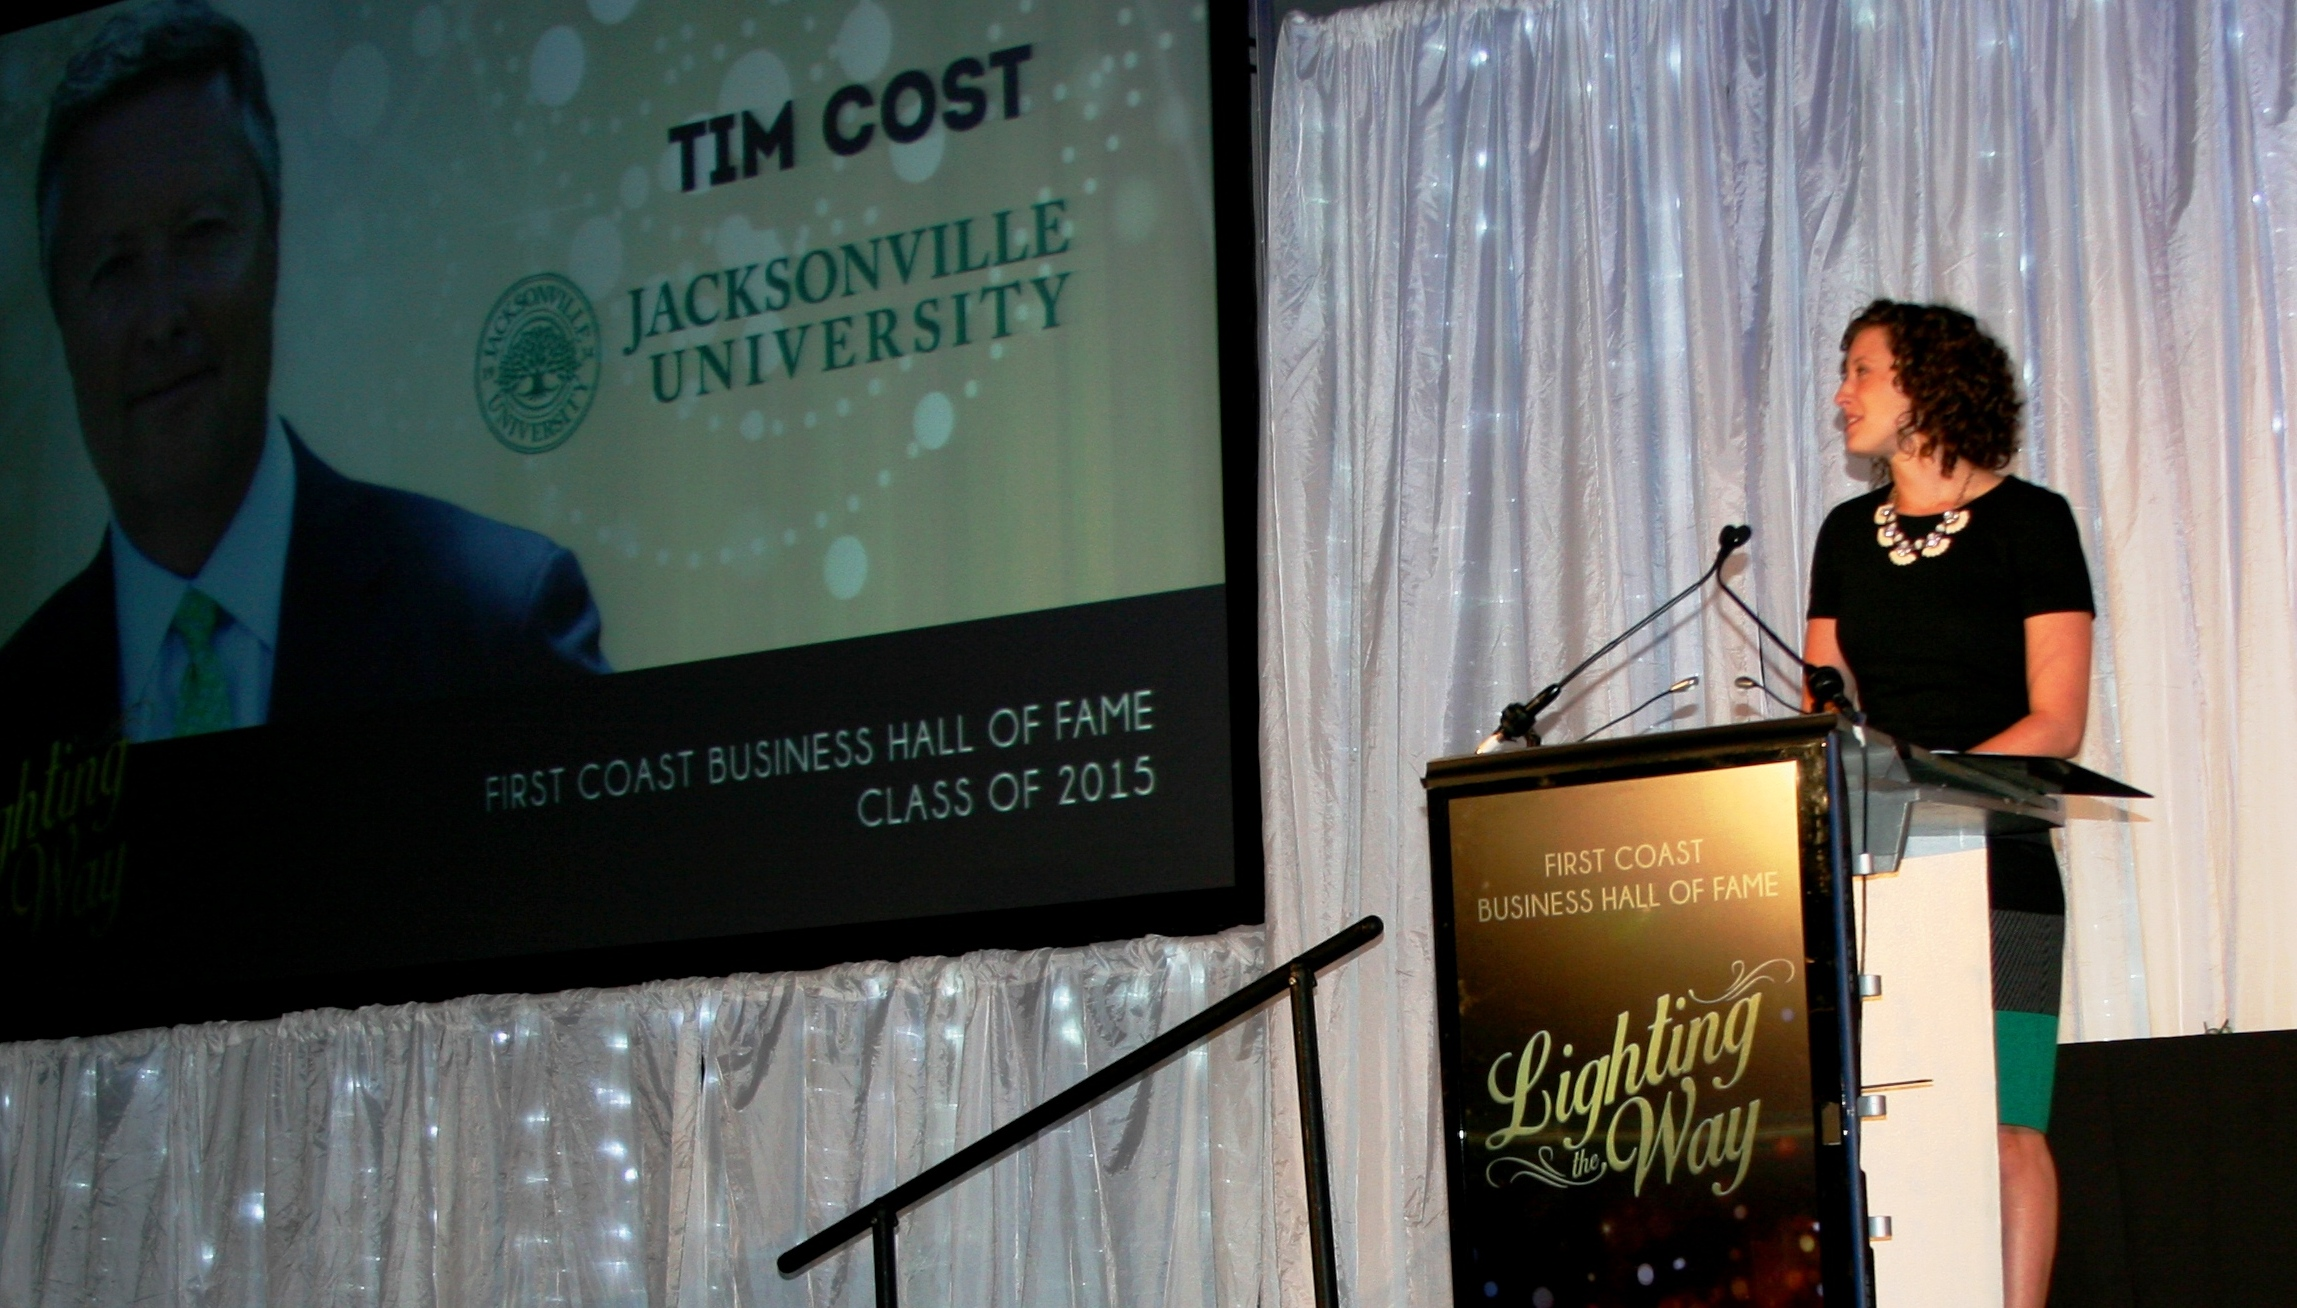 President Cost Champions Positive Intent At Induction To First Coast Business Hall Of Fame Wave Magazine Online